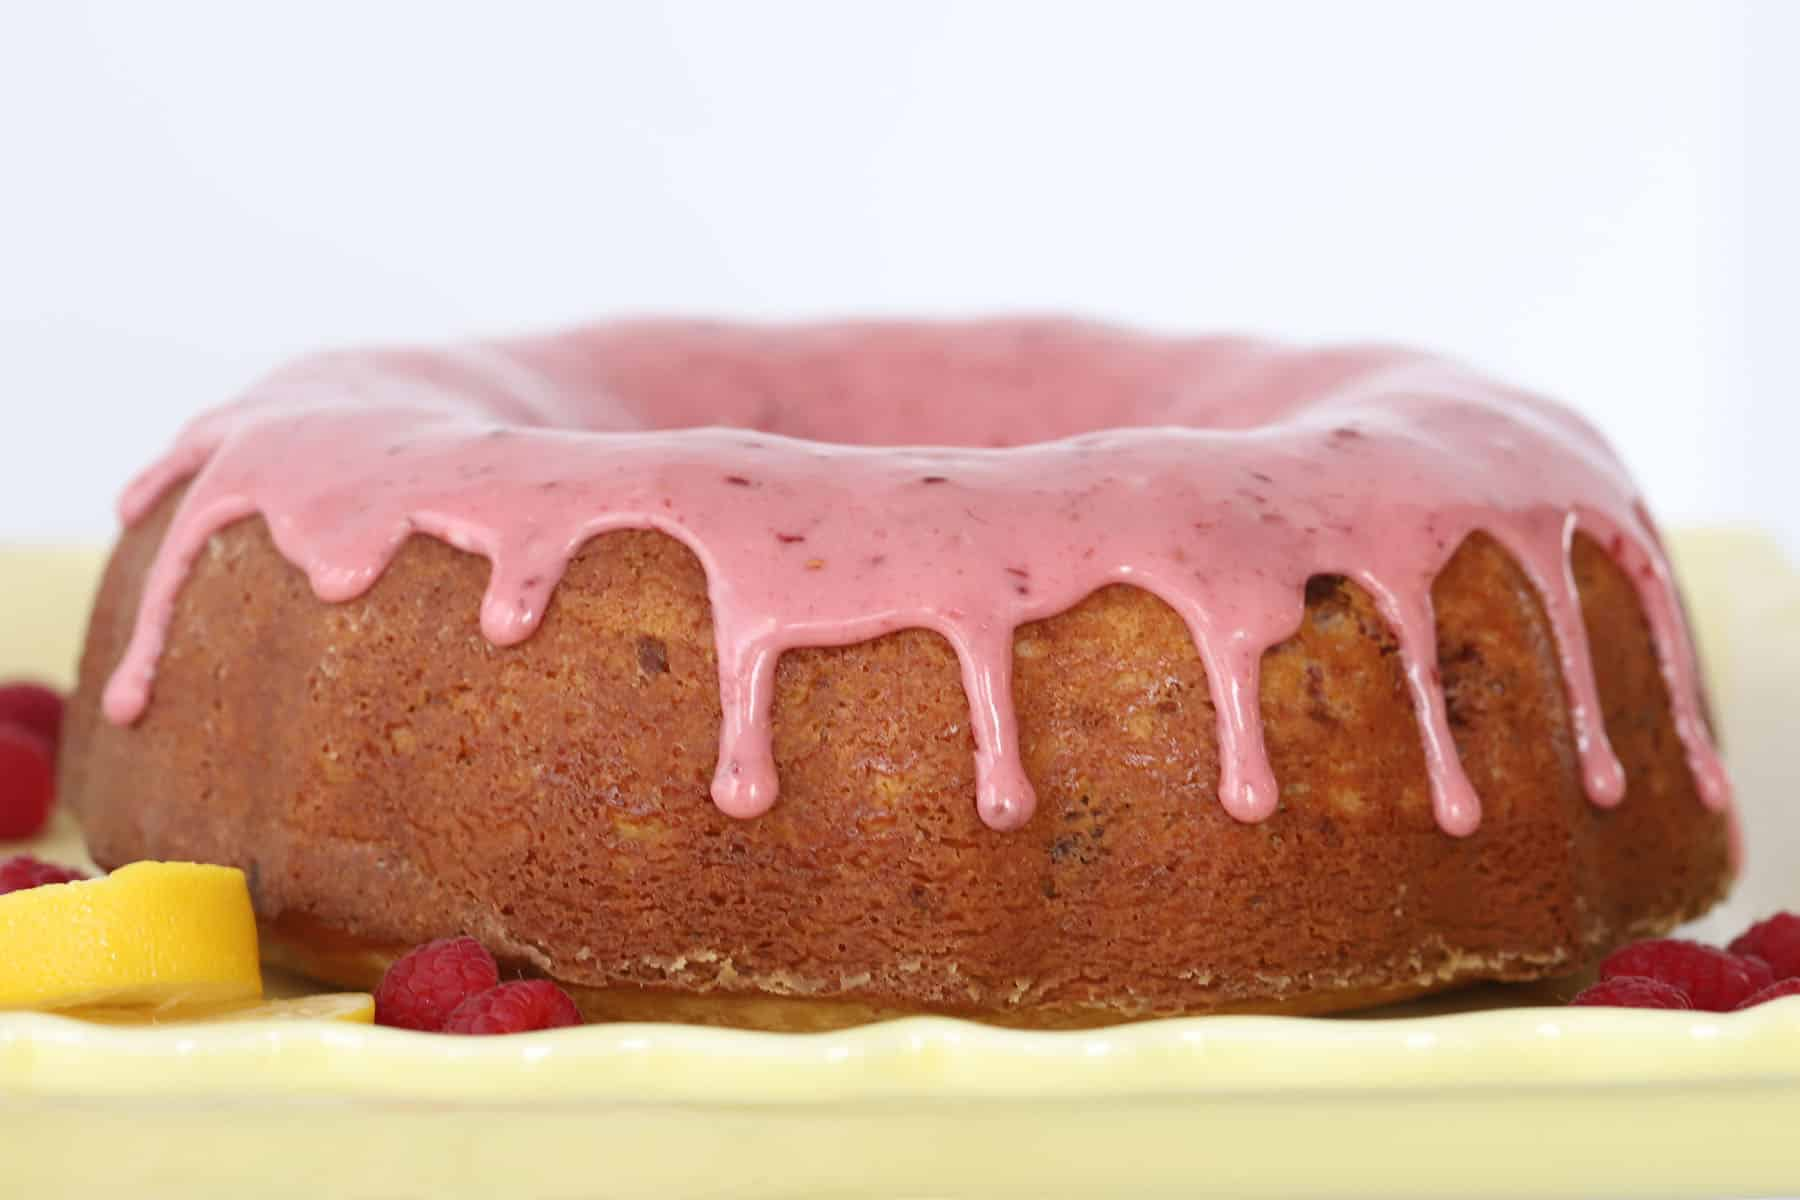 A full bundt cake on a serving plate topped with pink raspberry glaze.